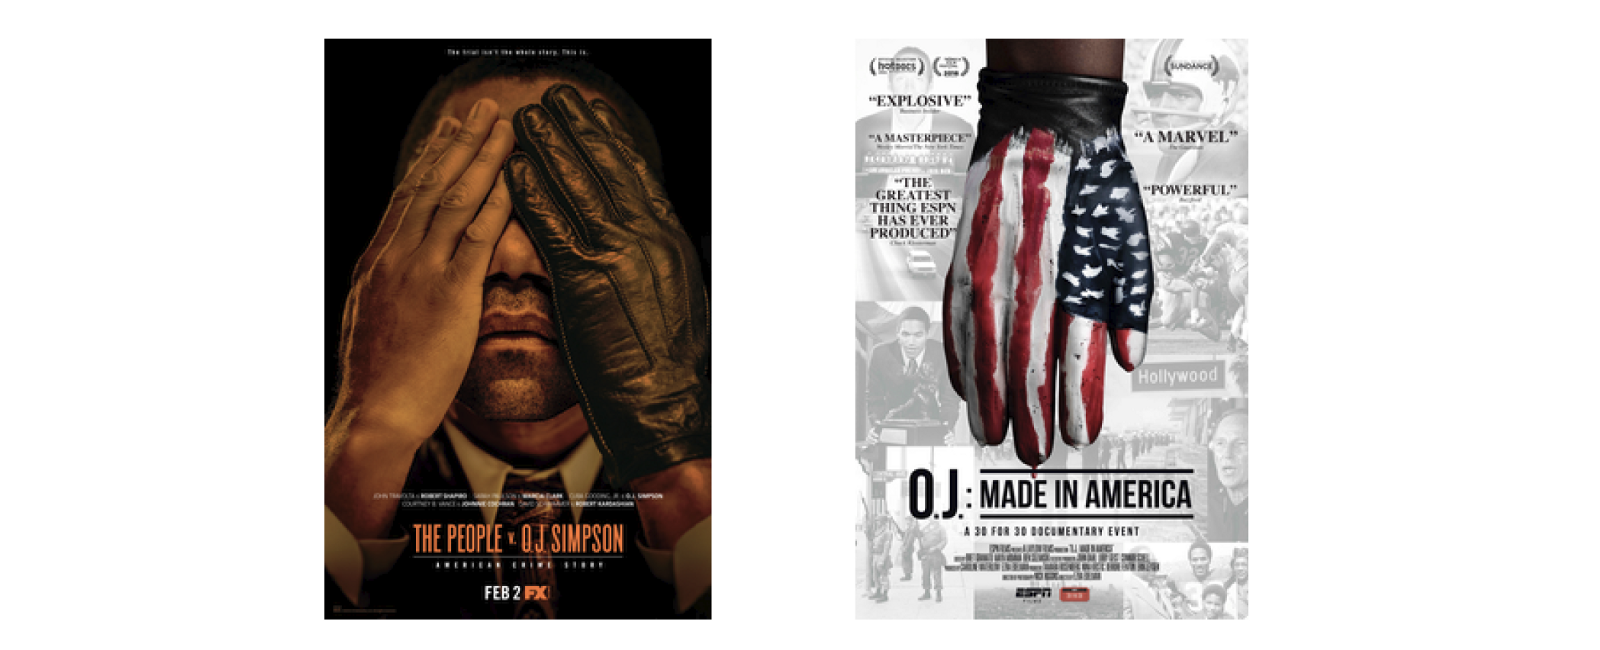 Theatrical film posters for The People v. O.J. Simpson and O.J. Made in America